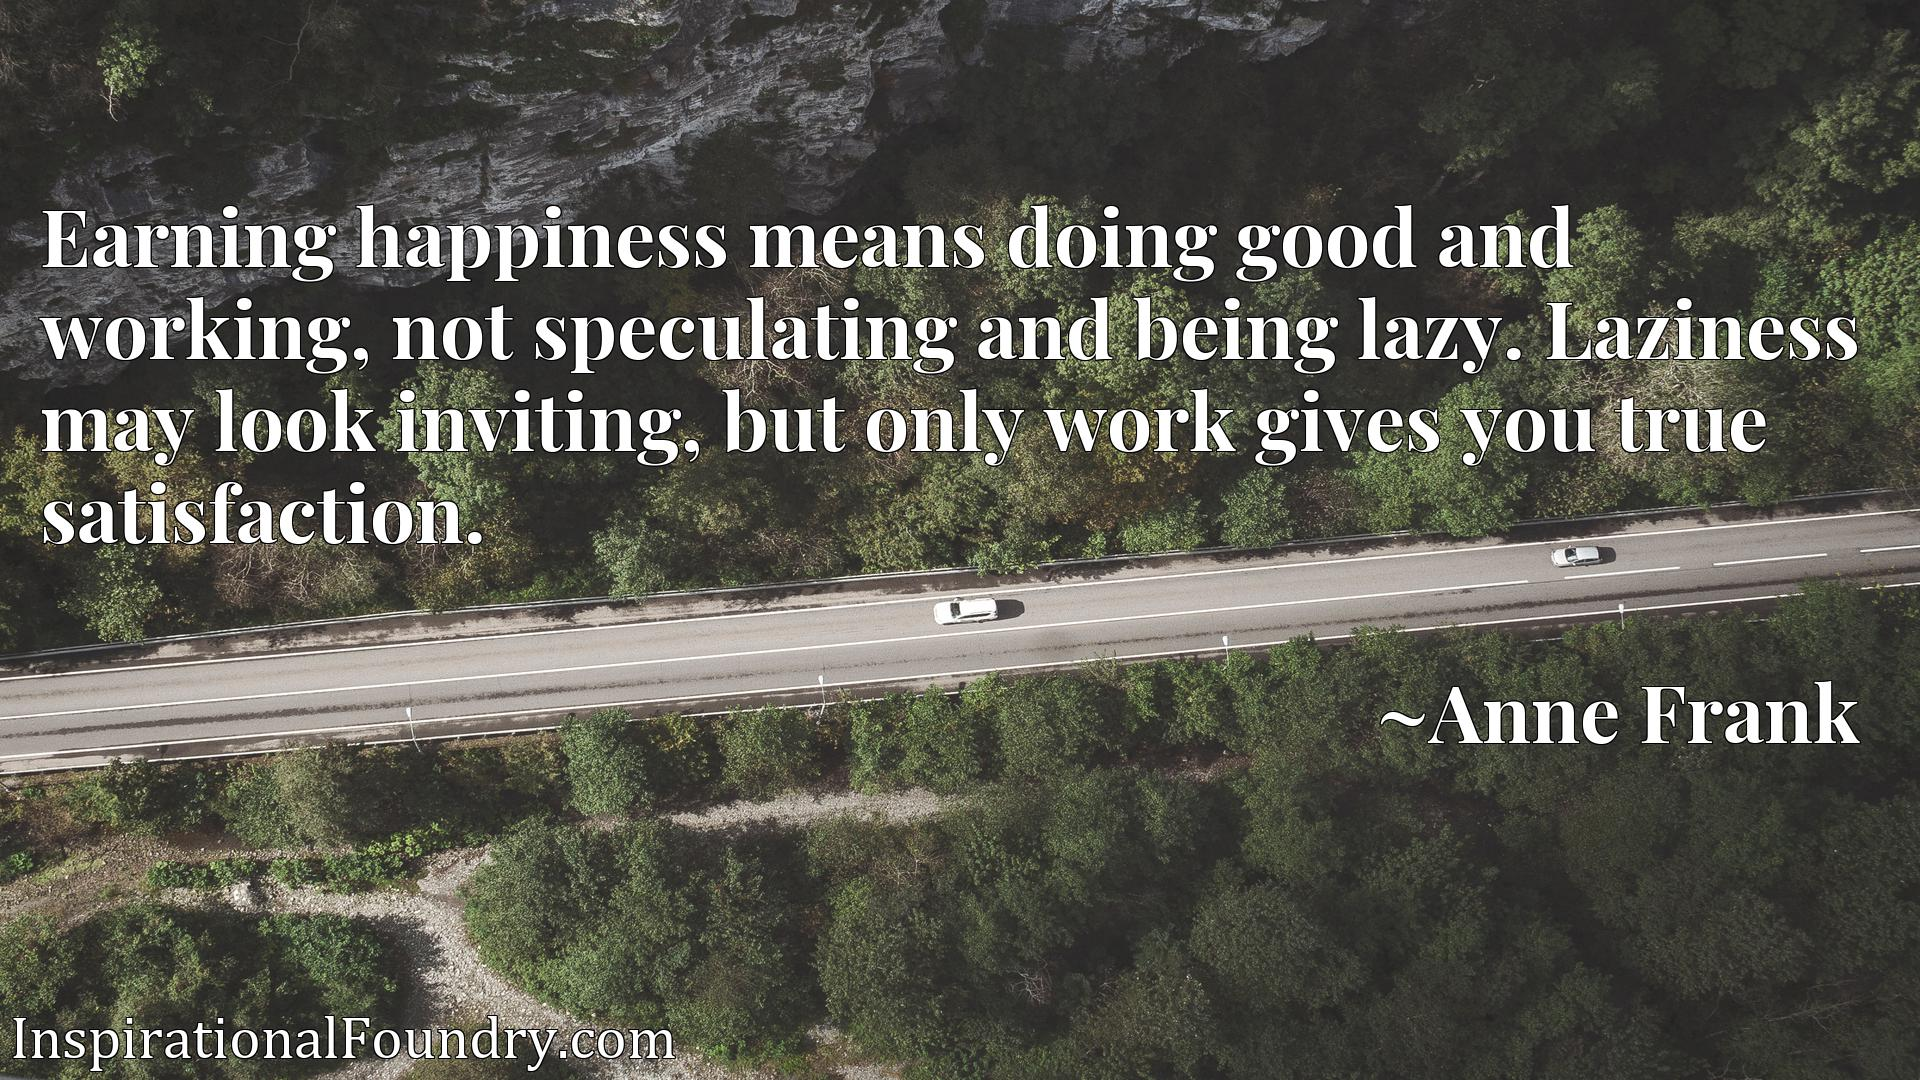 Earning happiness means doing good and working, not speculating and being lazy. Laziness may look inviting, but only work gives you true satisfaction.